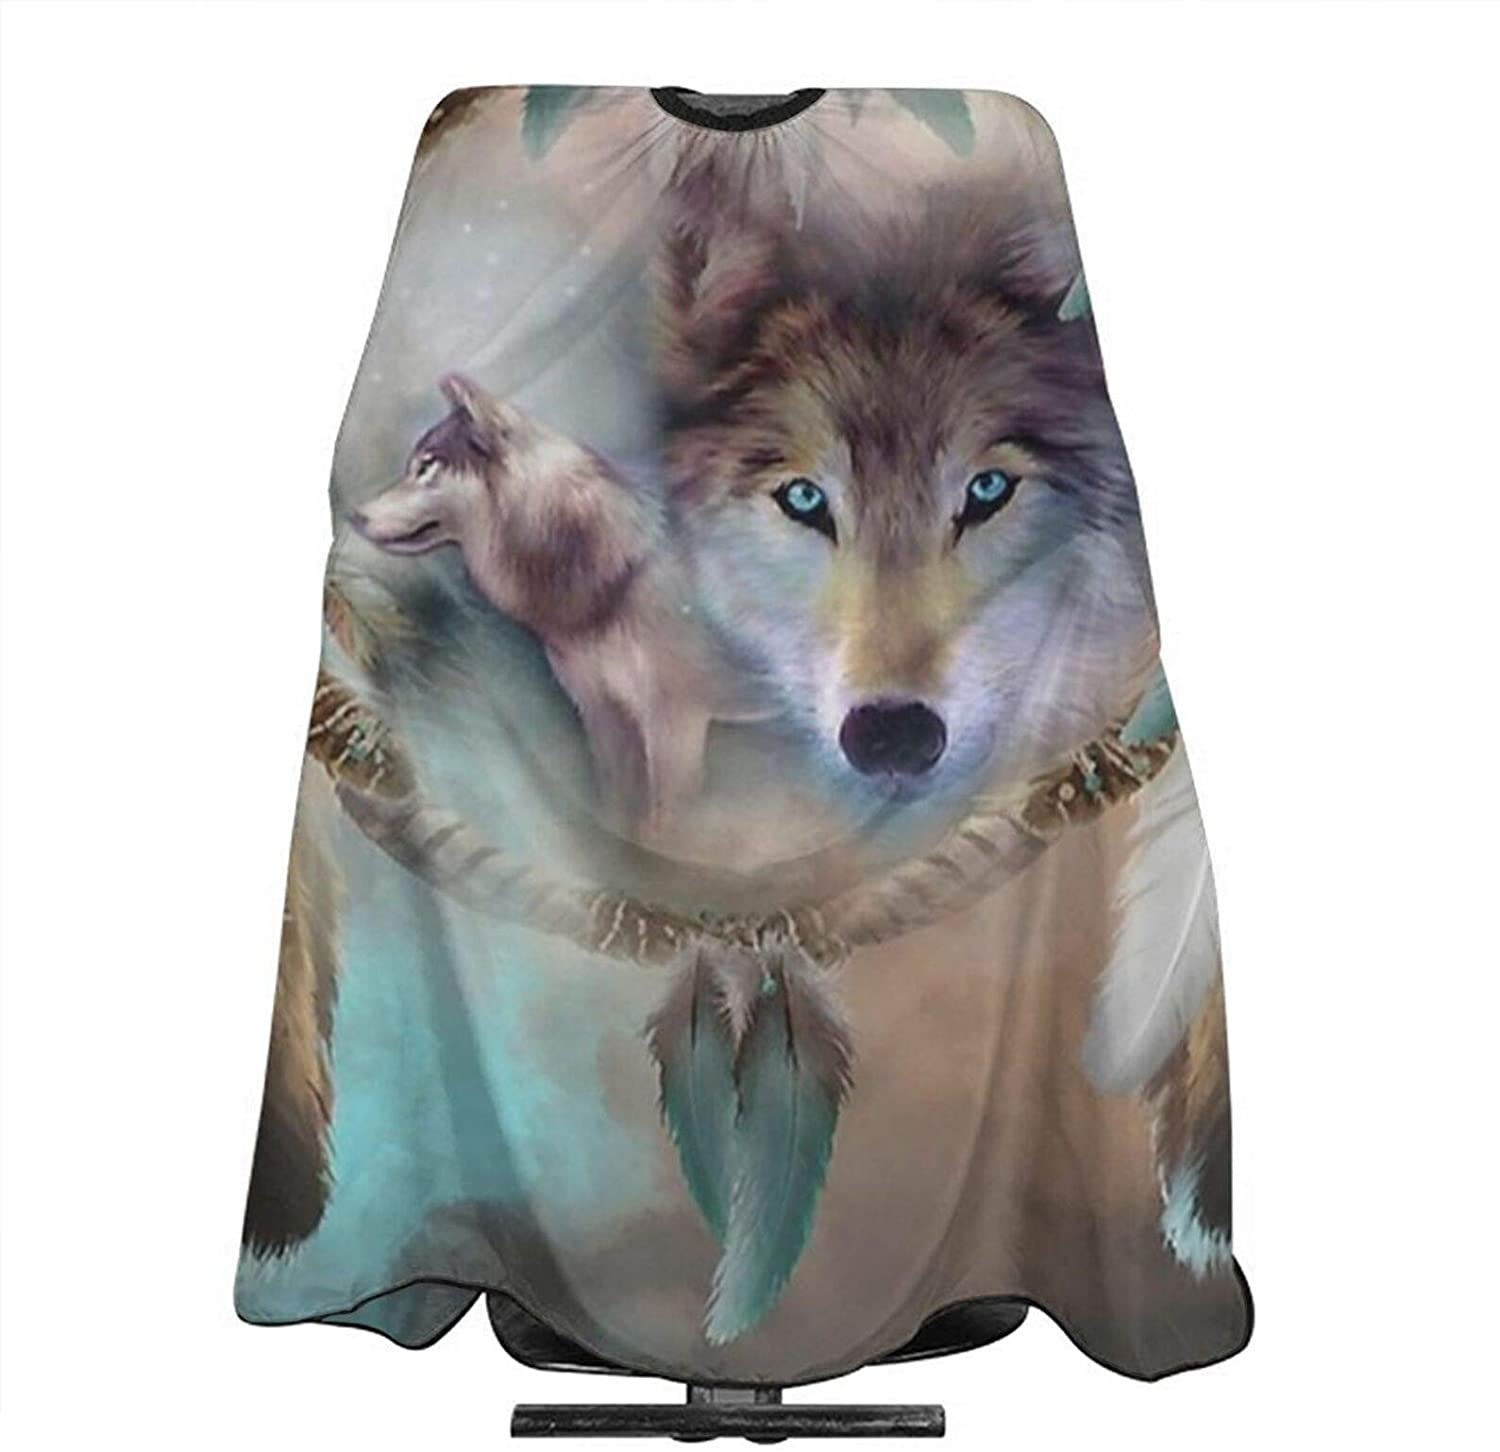 NiYoung Haircut Cape Barber Use Haircut Salon Hairdresser Apron Adjustable Dream Catcher Wolf Dreams of Peace Extra Long Cape for Hair Treatment, Cutting 55 x 66 inches